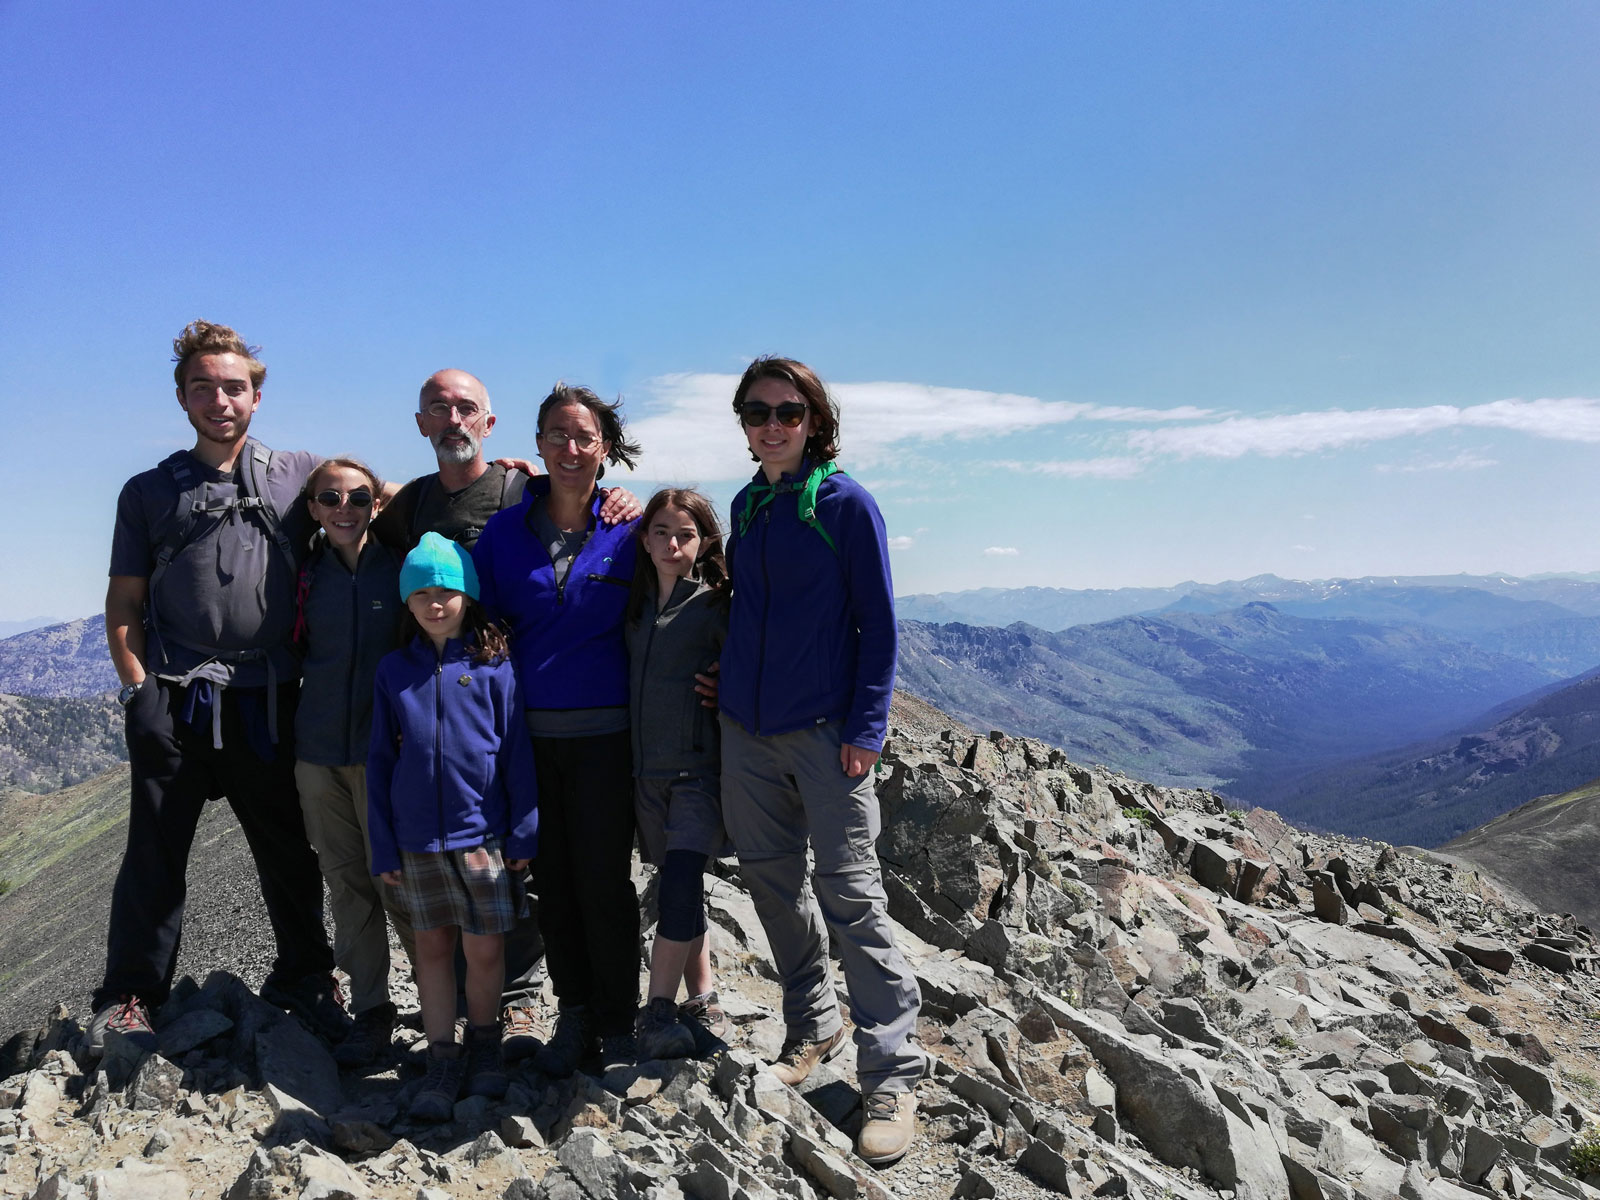 Family on the summit of Avalanche Peak in Yellowstone National Park, Wyoming